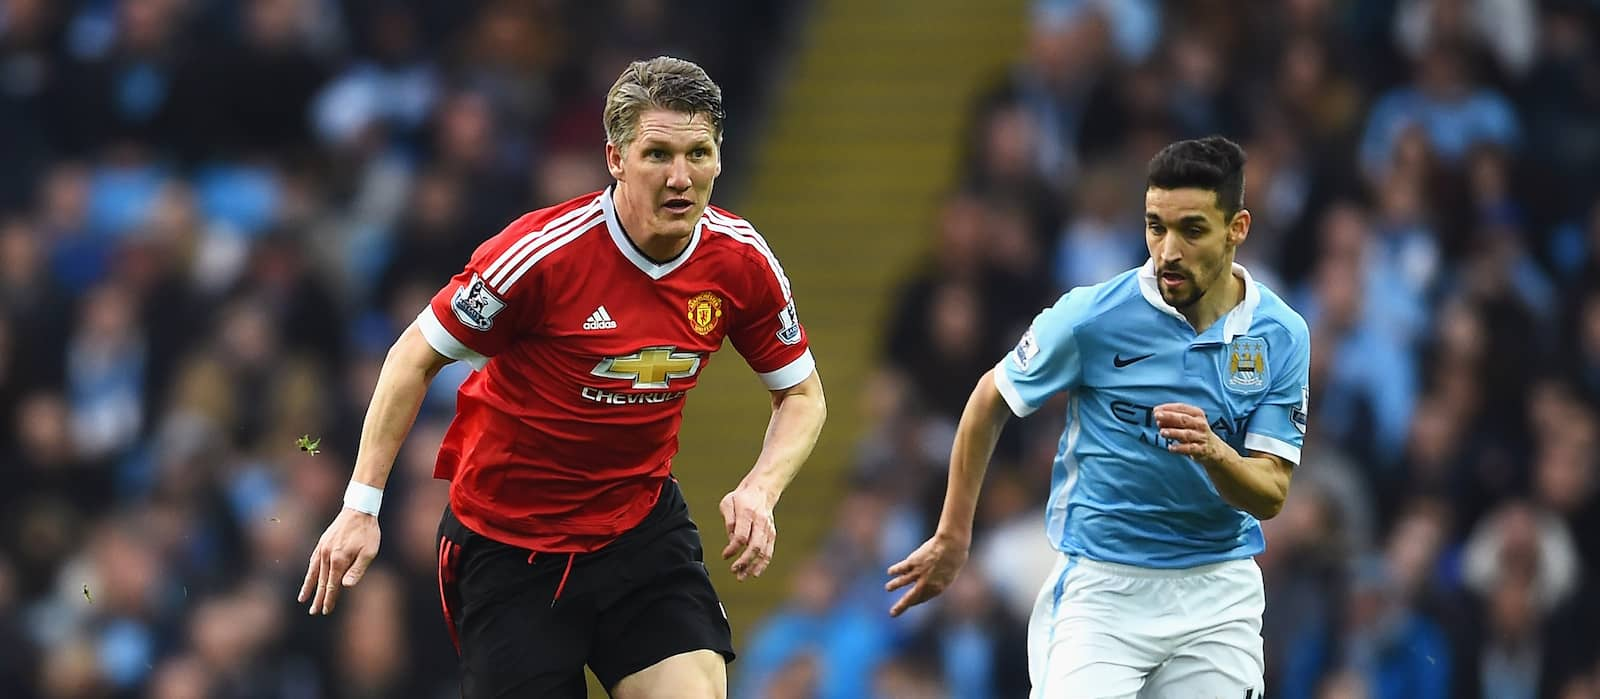 Bastian Schweinsteiger insists he's confident about his fitness